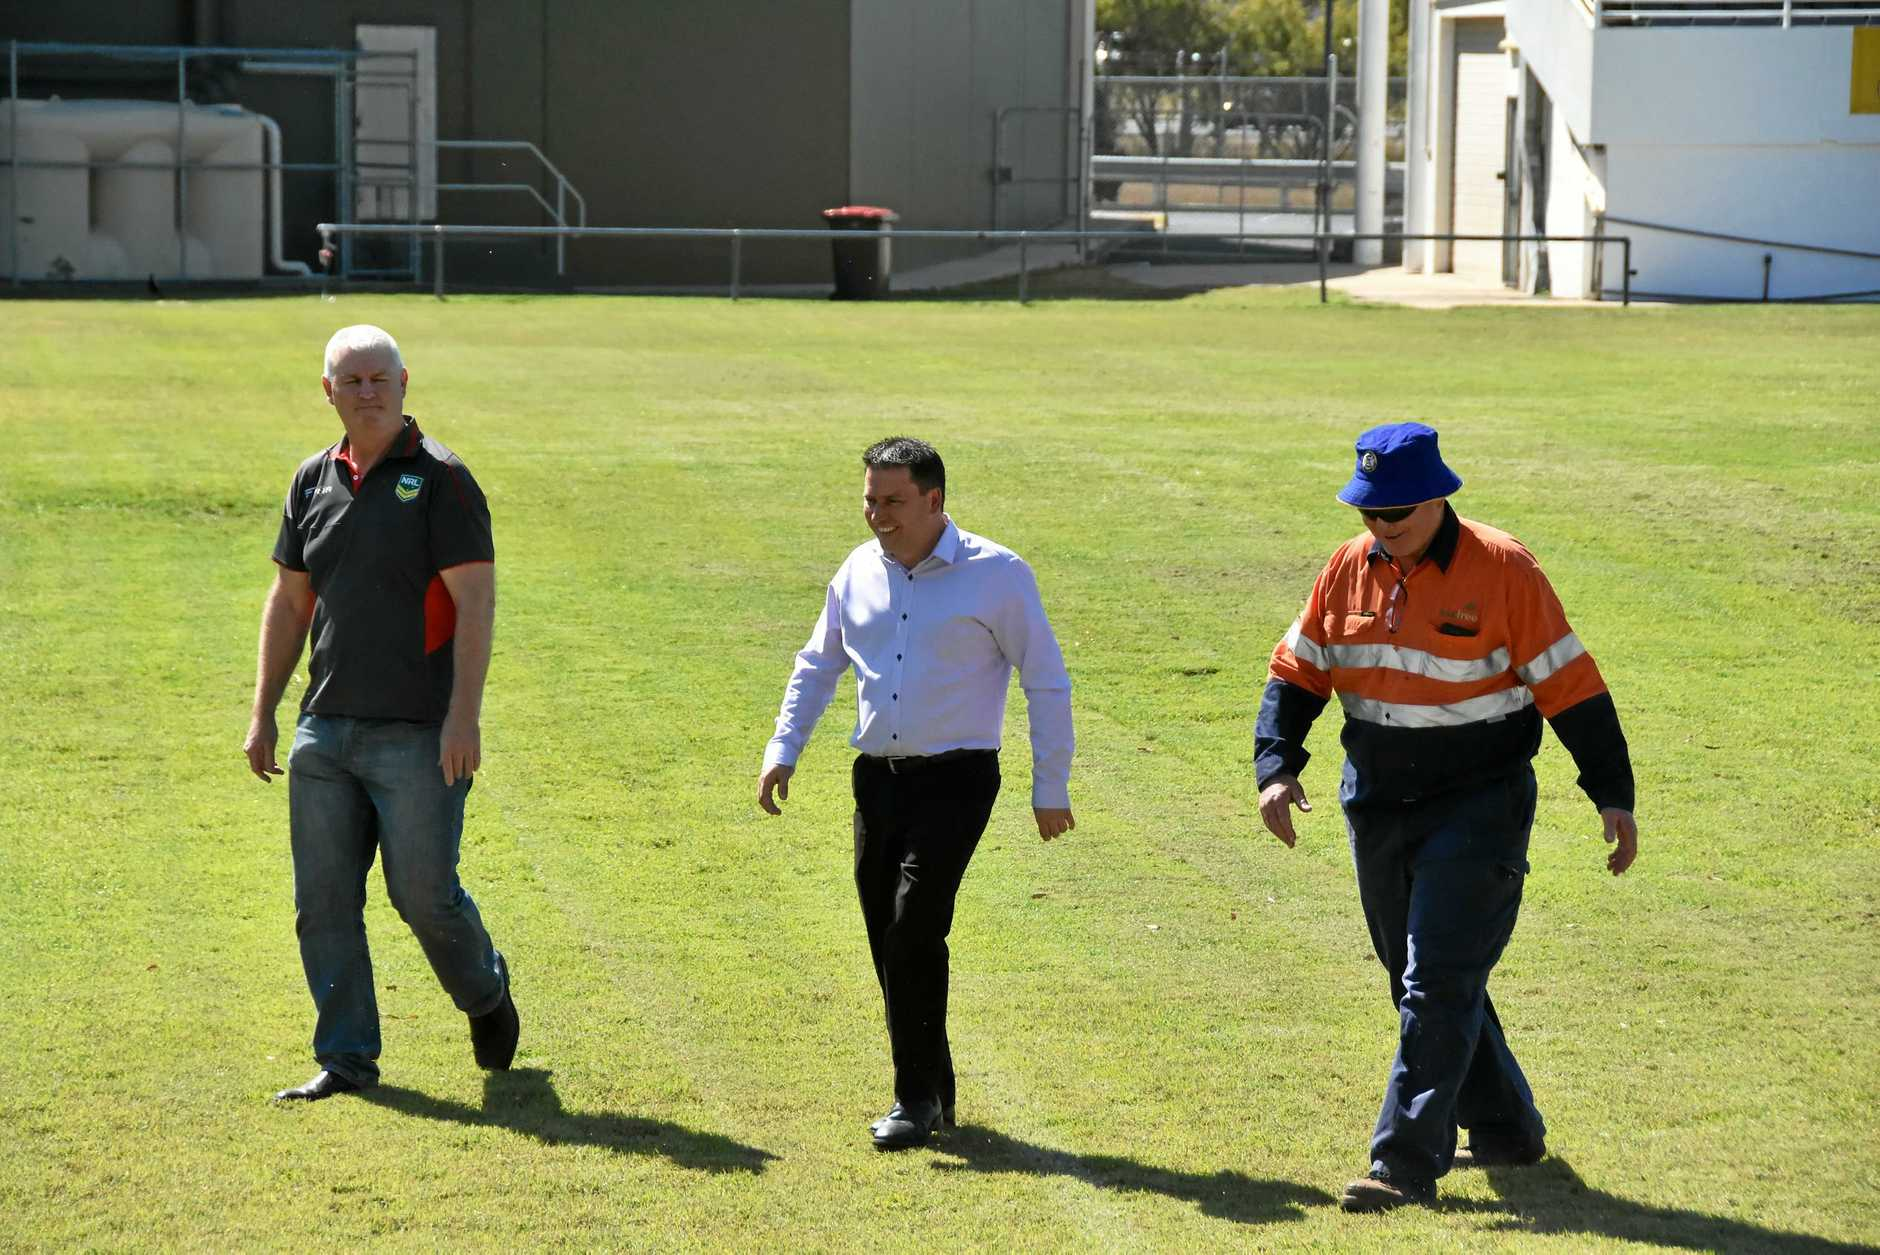 Gladstone NRL match bid - (from left): NRL general manager of football, venues and broadcaster relations Shaun Wendt, Gladstone Region mayor Matt Burnett and Gladstone Rugby League president Richard Duff at Marley Brown Oval.